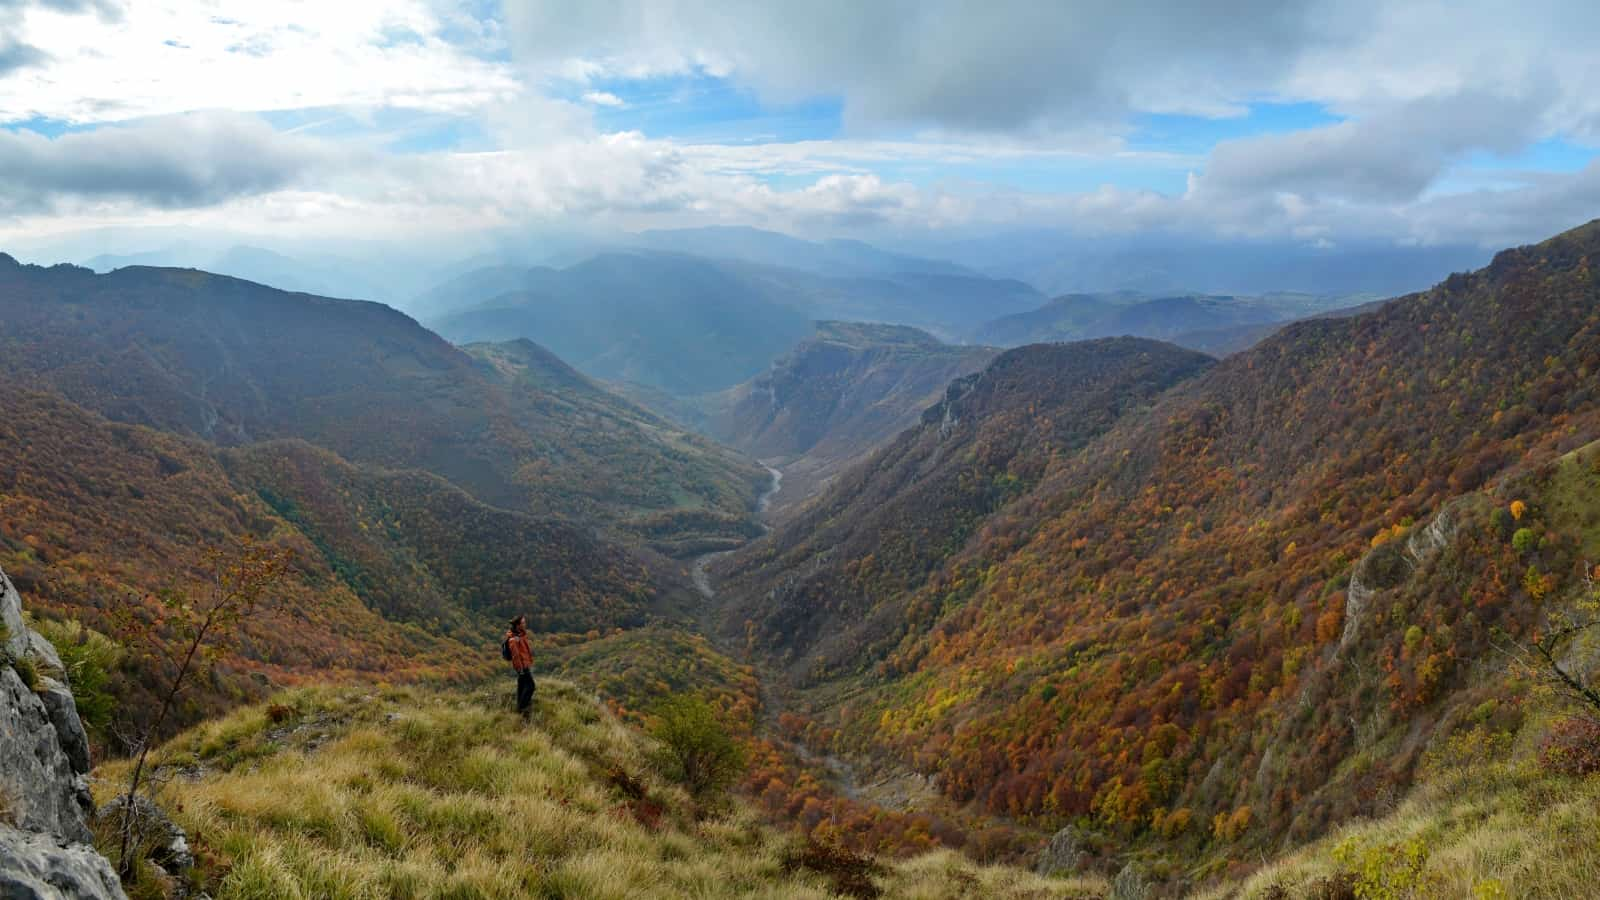 The valley above Opletnja village - Panorama view of Vrachanski Balkan Nature Park- photo: Vrachanski Balkan Nature Park/Krasimir Lakovski